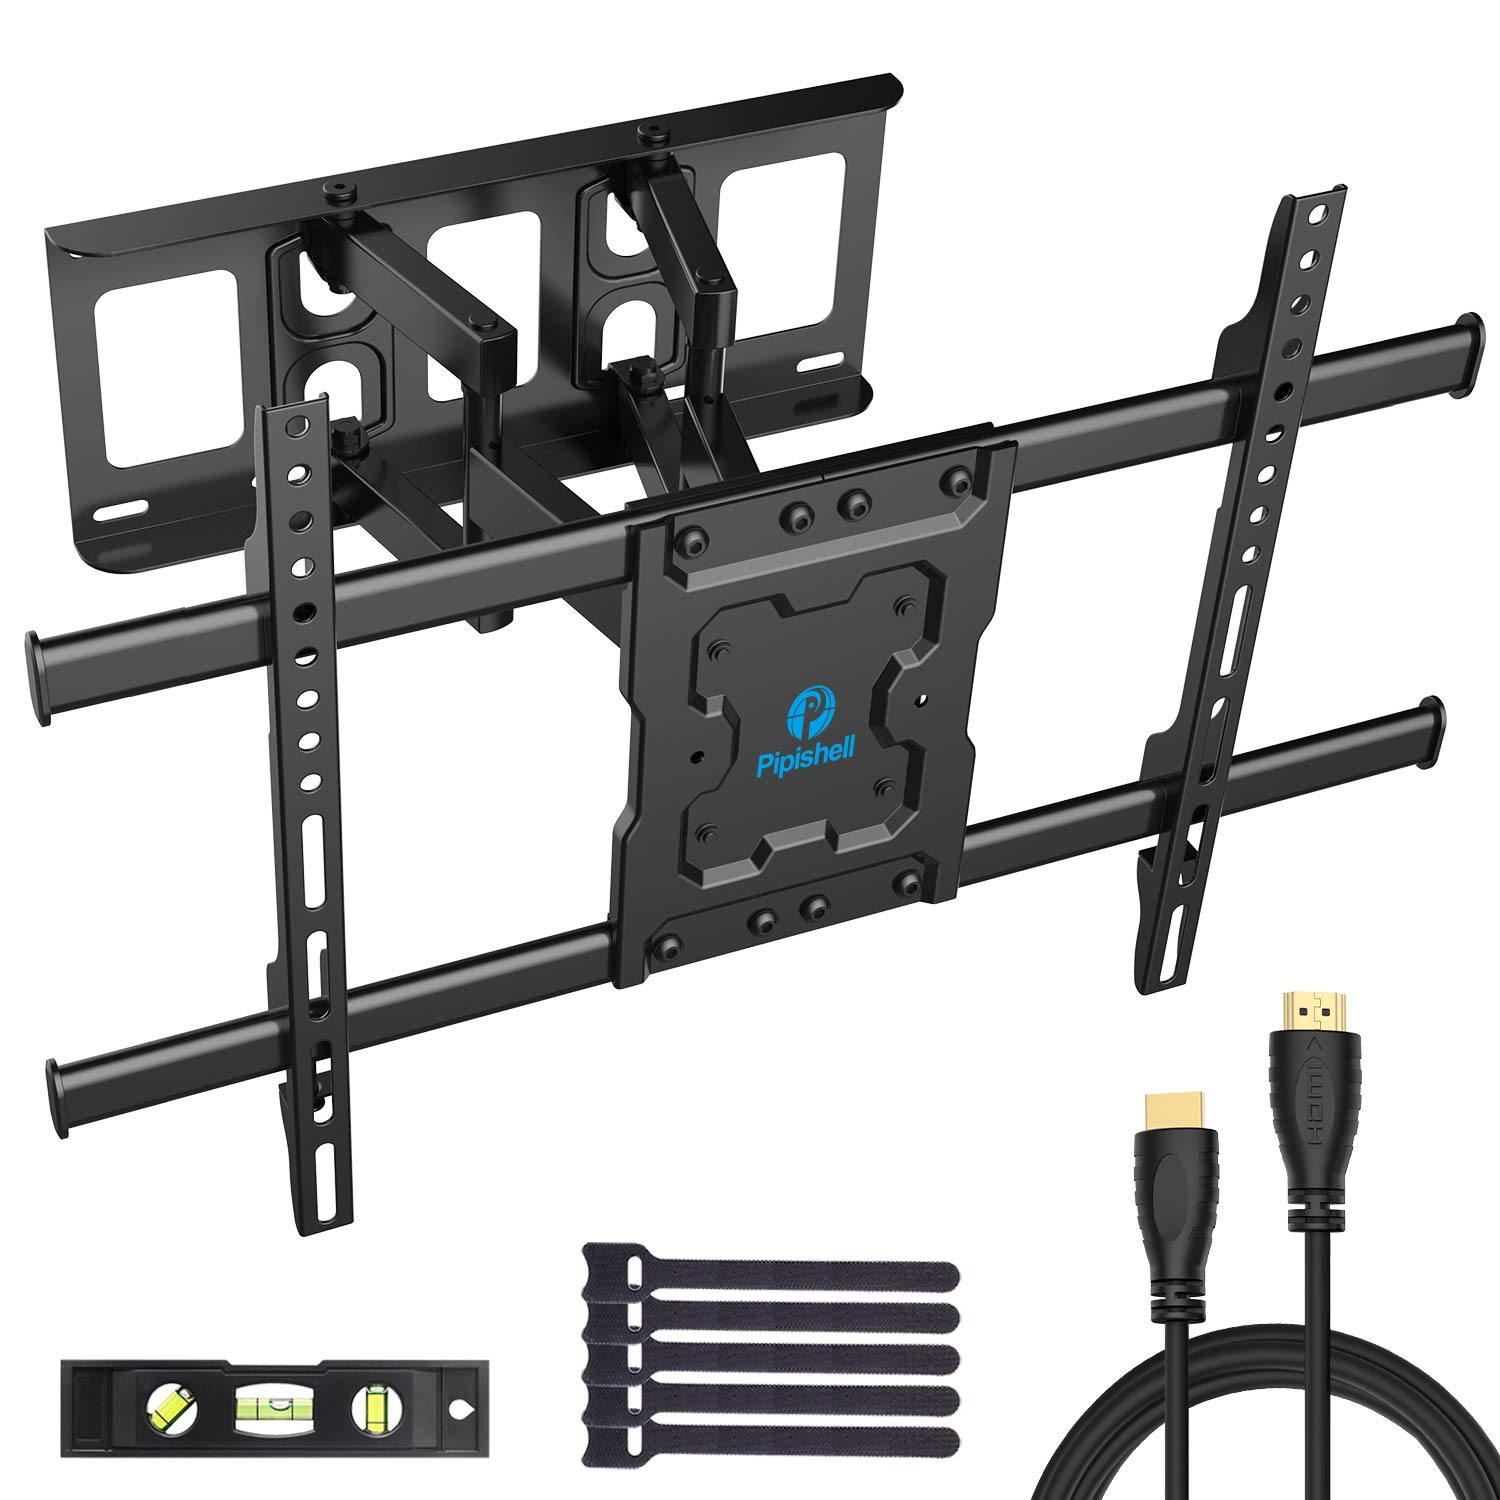 Full Motion TV Wall Mount Bracket Dual Articulating Arms Swivels Tilts  Rotation for Most 37-70 Inch LED, LCD, OLED Flat&Curved TVs, Holds up to